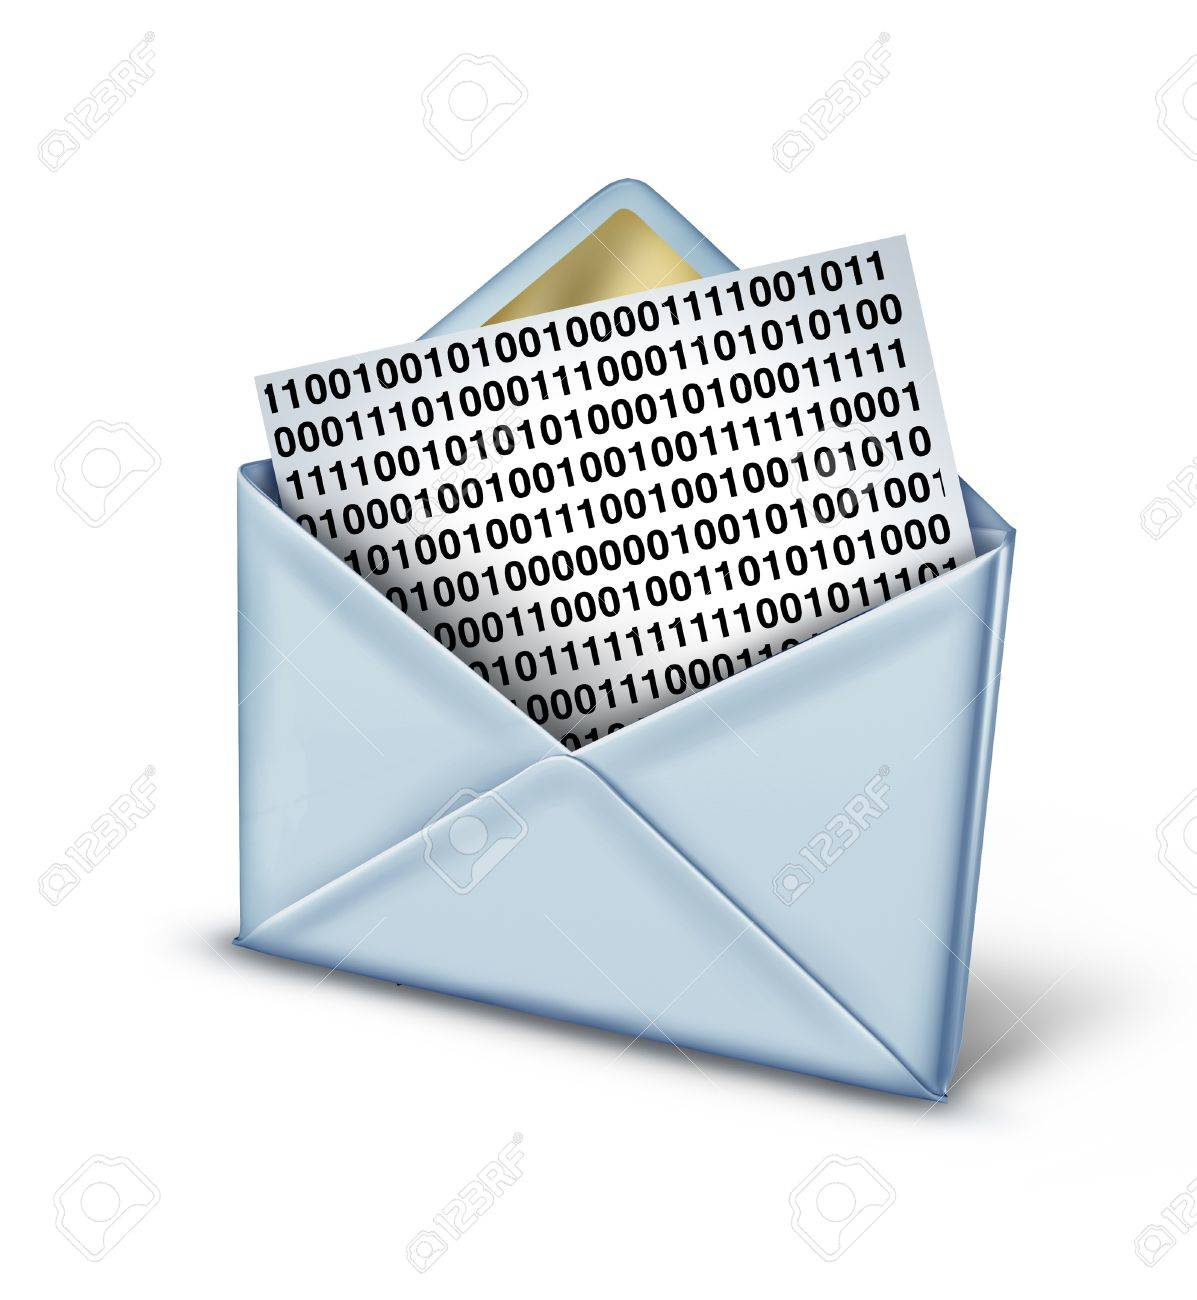 Digital message technology concept with a letter or envelope with a binary code note symbol being sent as a text message or email through social networking as an icon of modern communcation between computer devices Stock Photo - 21490992